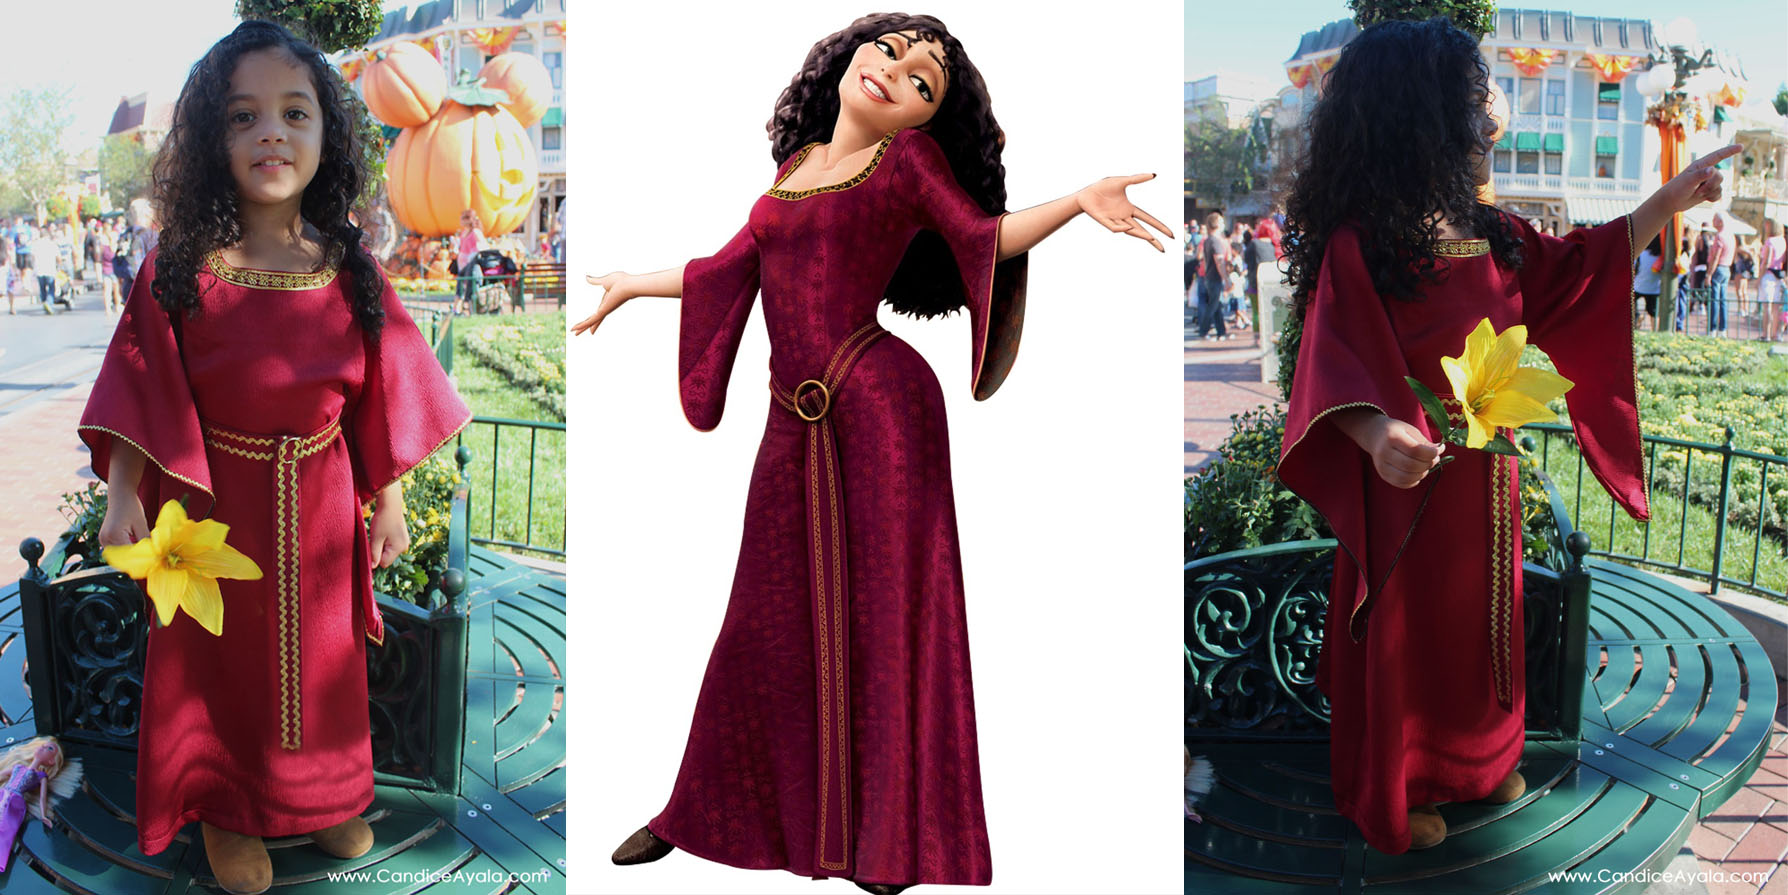 mothergothelcollage  sc 1 st  Candice Ayala & Halloween at Disneyland 2015 u2013 DIY Mother Gothel Costume | Candice Ayala